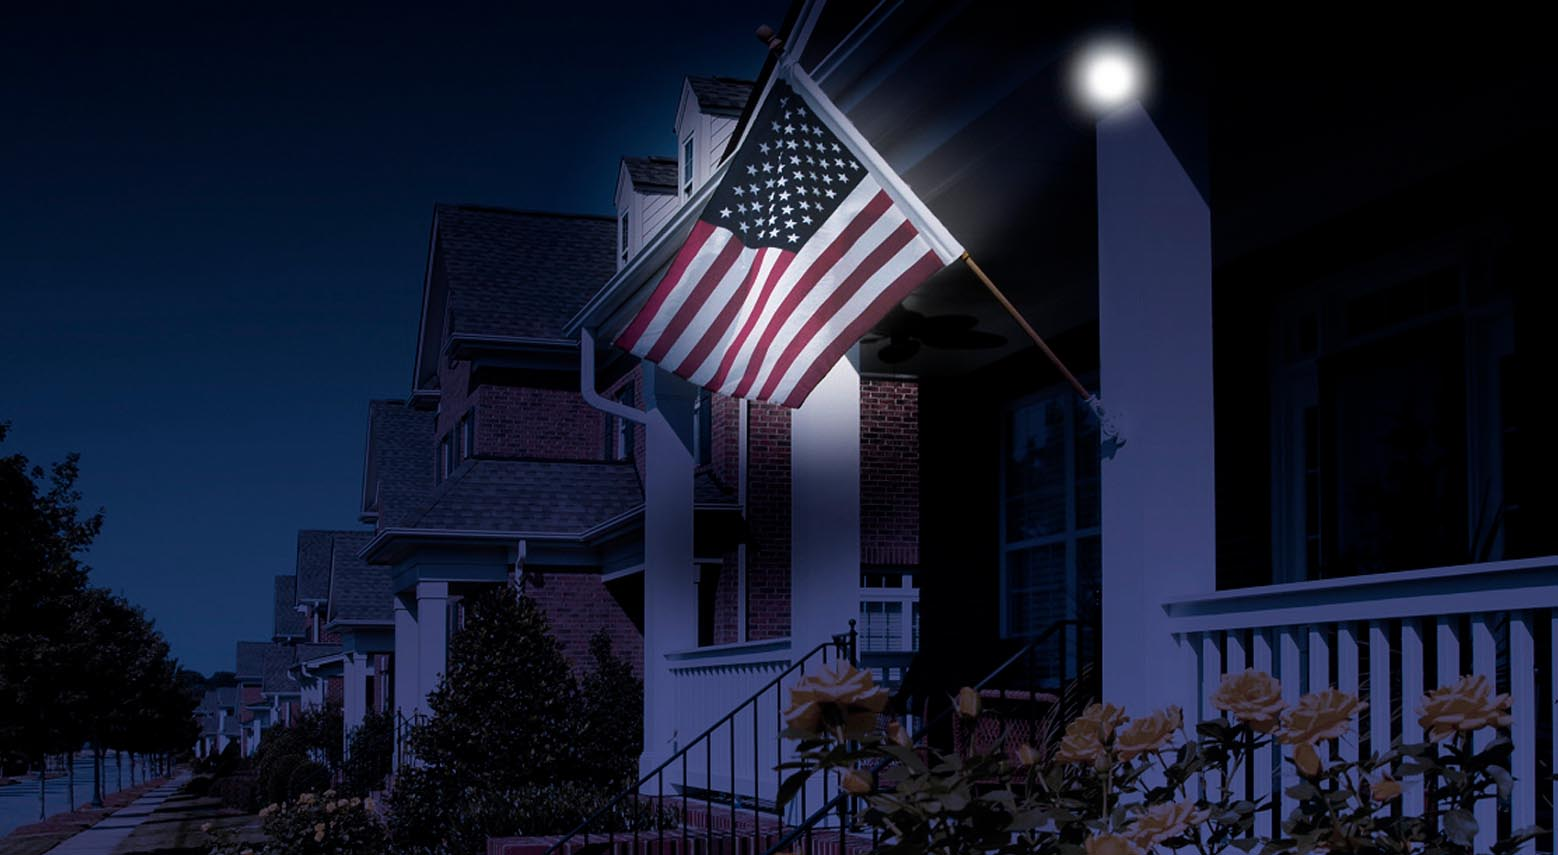 How Solar Products Help You Adhere to the U.S. Flag Code